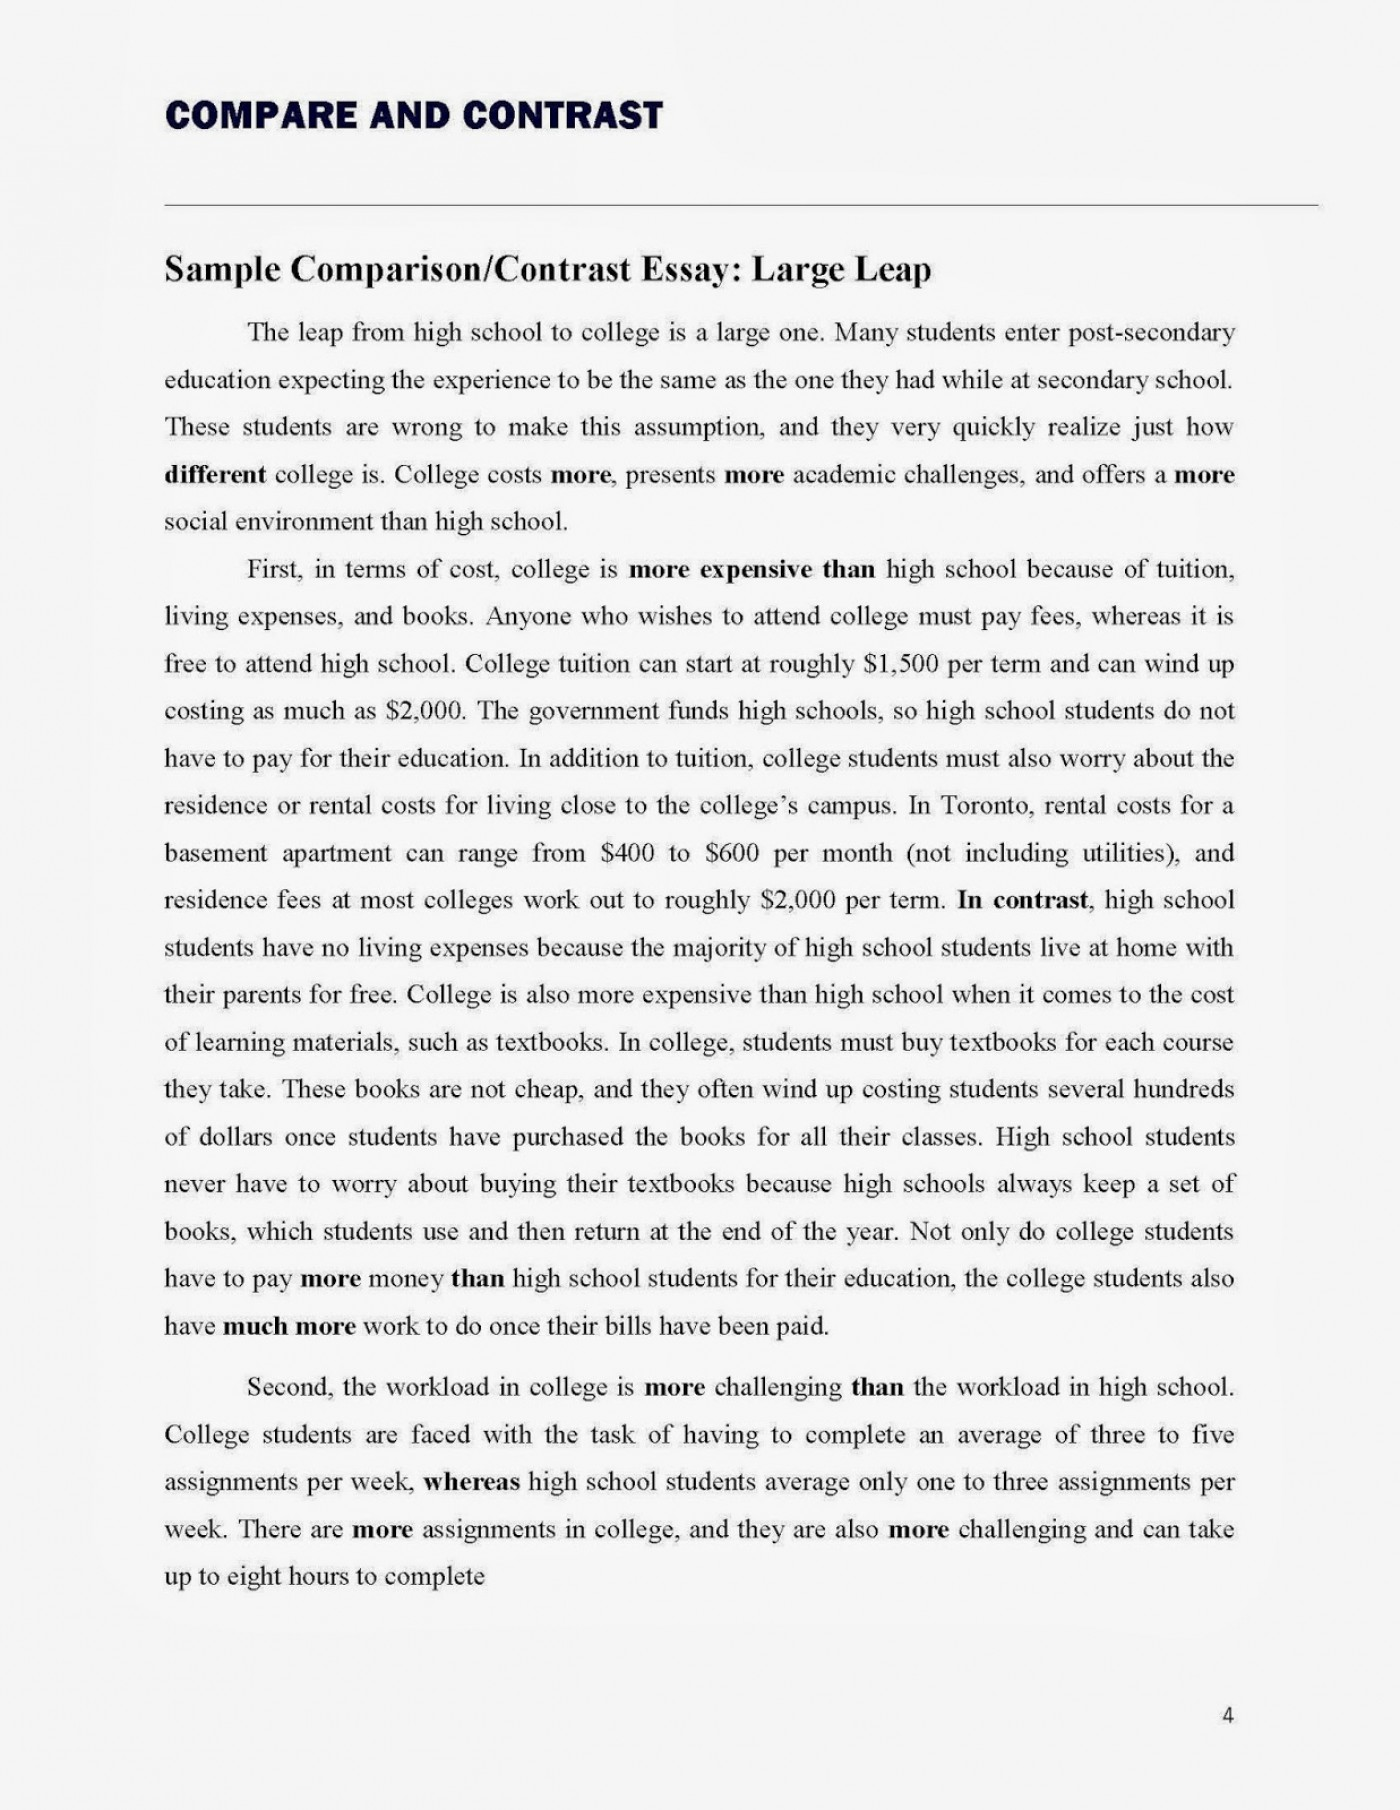 011 Good Compare And Contrast Essay Compare20and20contrast20essay Page 4 Unbelievable How To Write A Conclusion Paragraph For Examples Transition Words Essays Pdf 1400